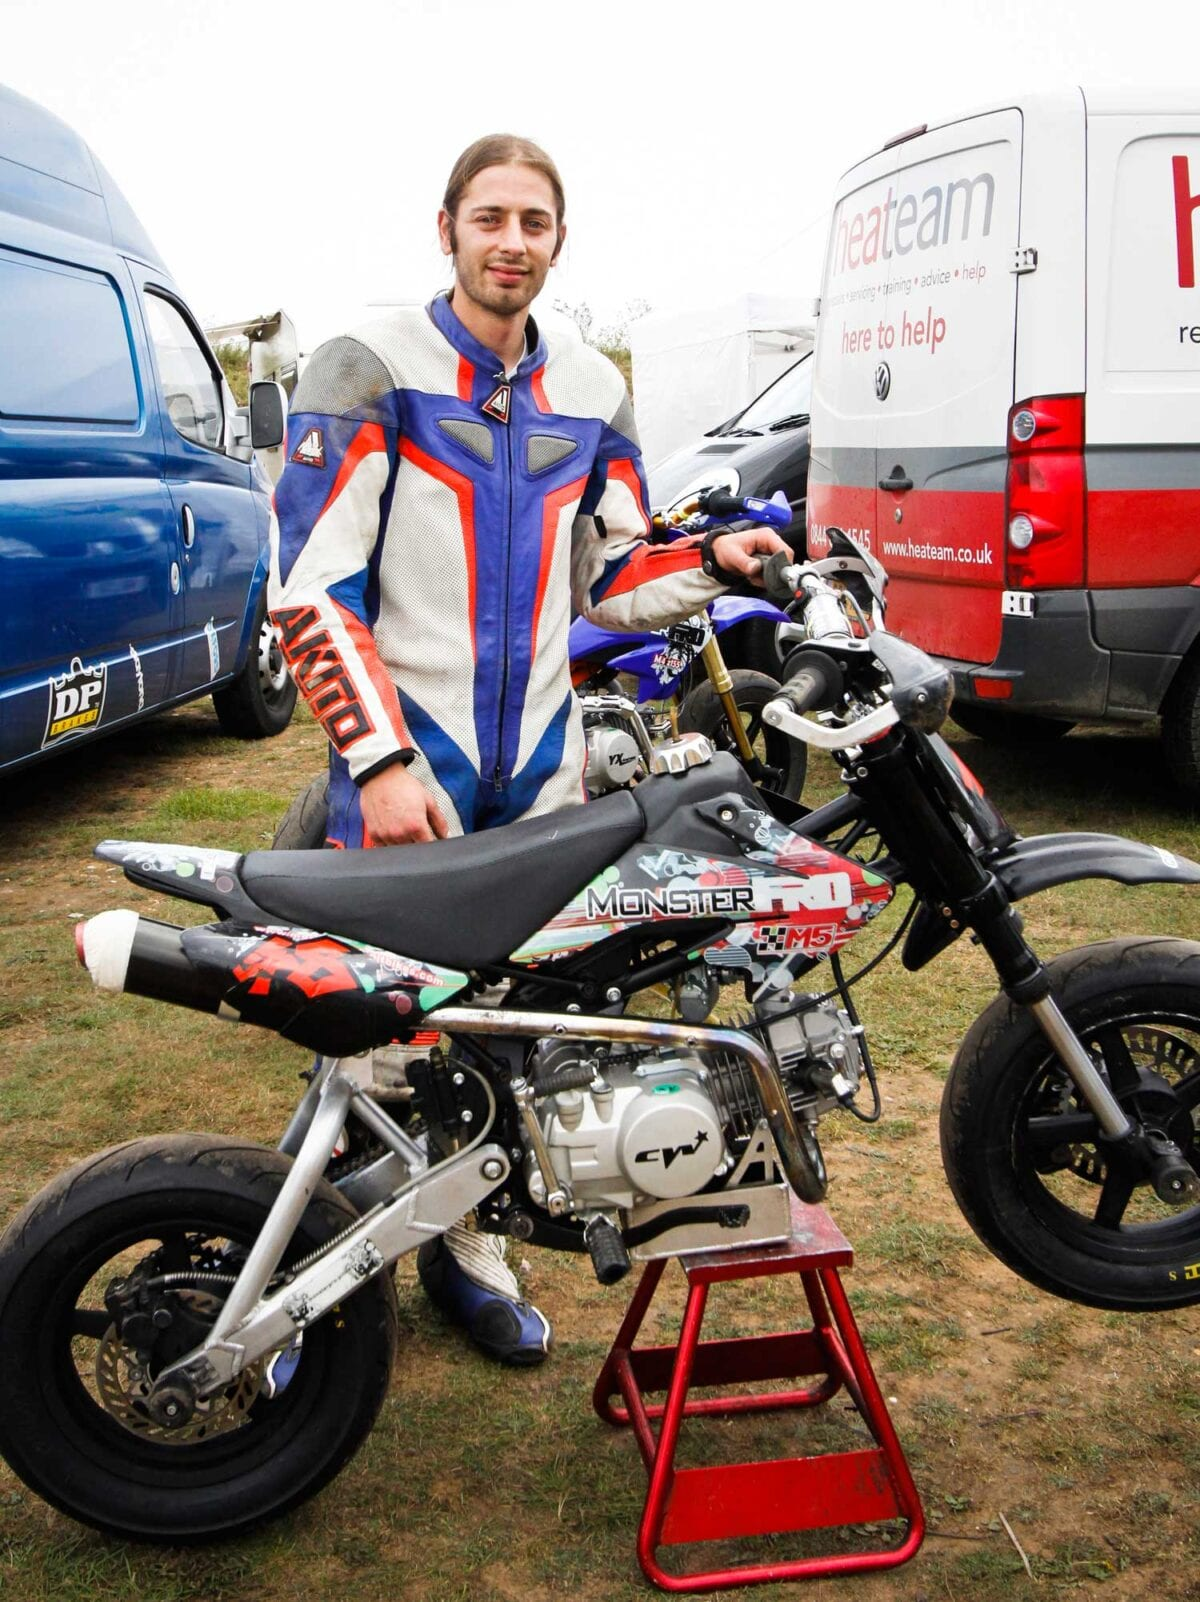 Race leader Ben Lord with his Monster-Pro CRF50